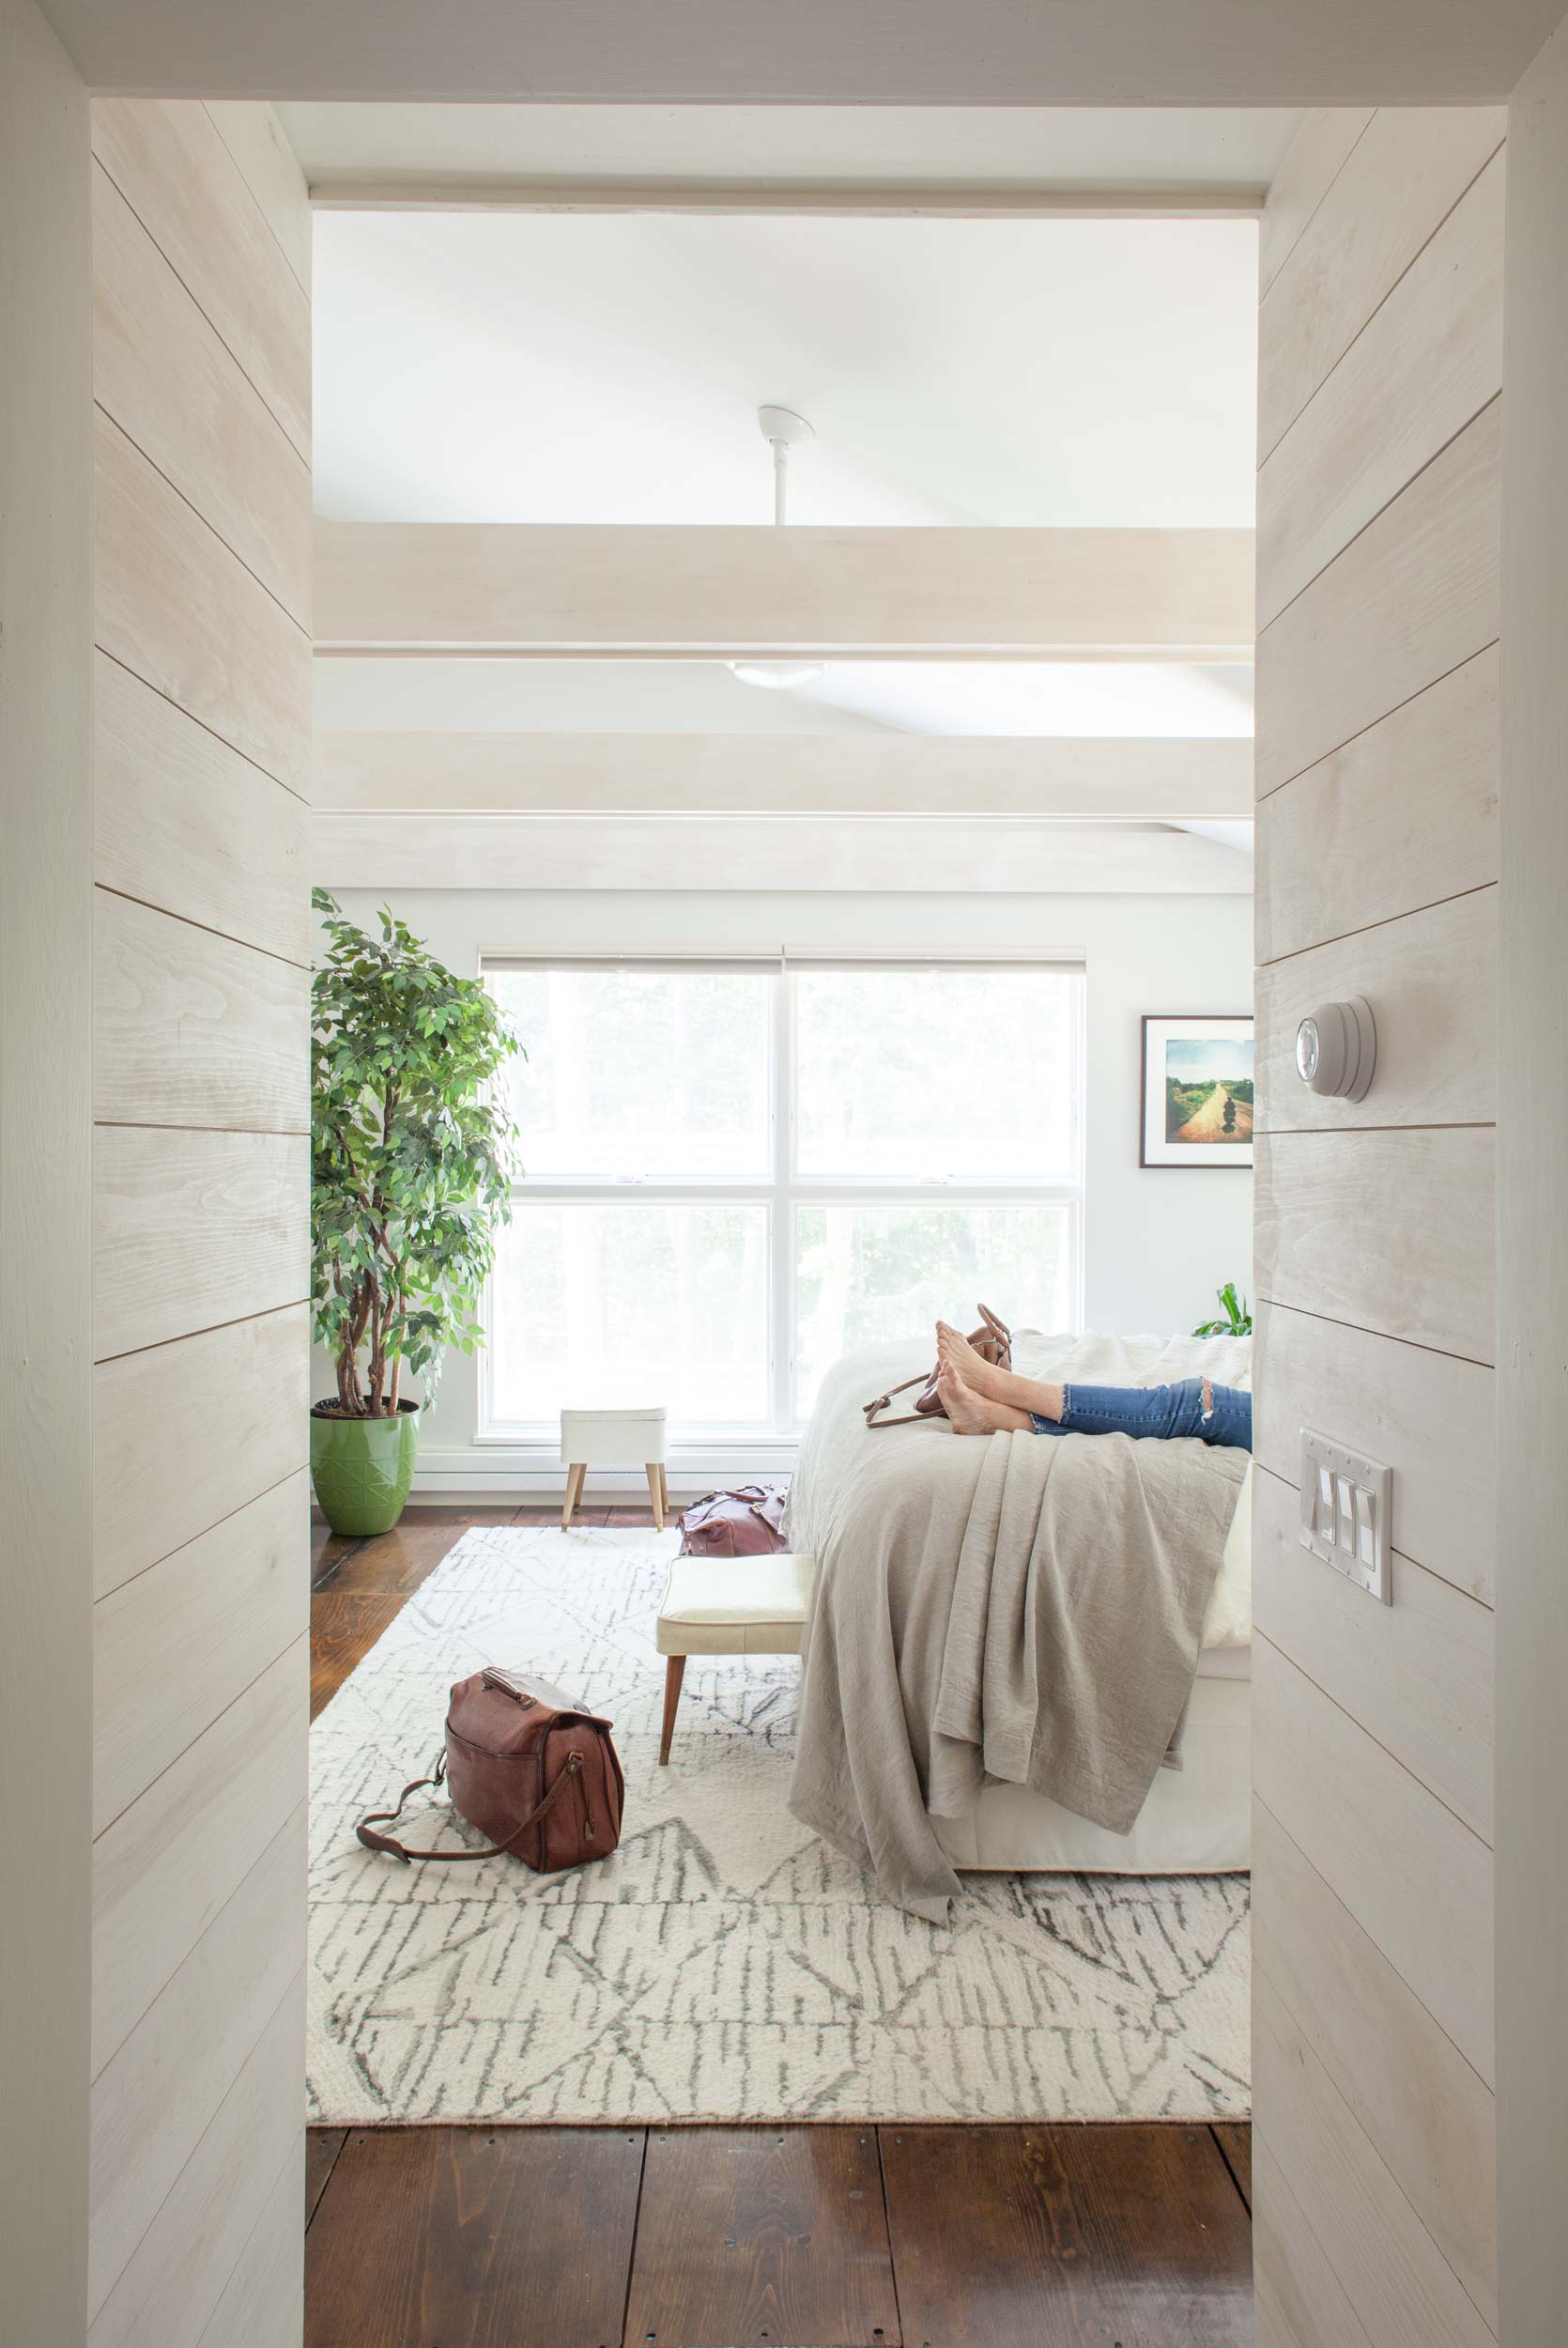 A view into the master bedroom that shows an entryway and beams with whitewash. Here, an original low ceiling was removed to make the space light and airy. The rug is from West Elm. Even the European radiator on the far wall is in keeping with the home's white, clean, and contemporary theme.